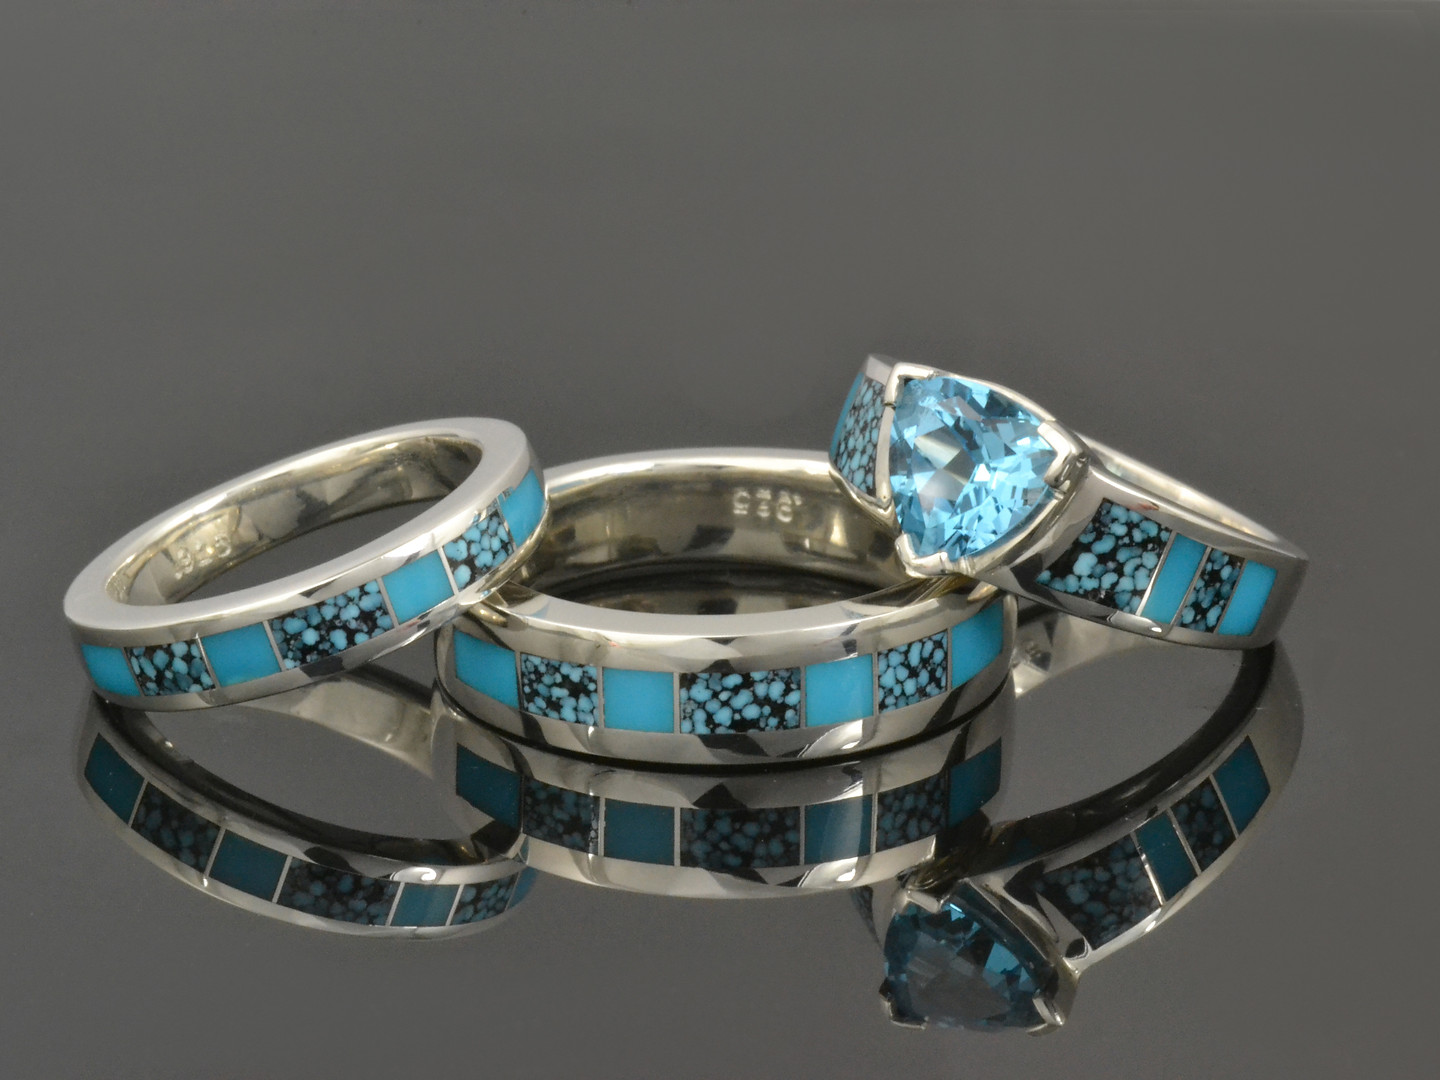 Turquoise engagement ring and wedding ri